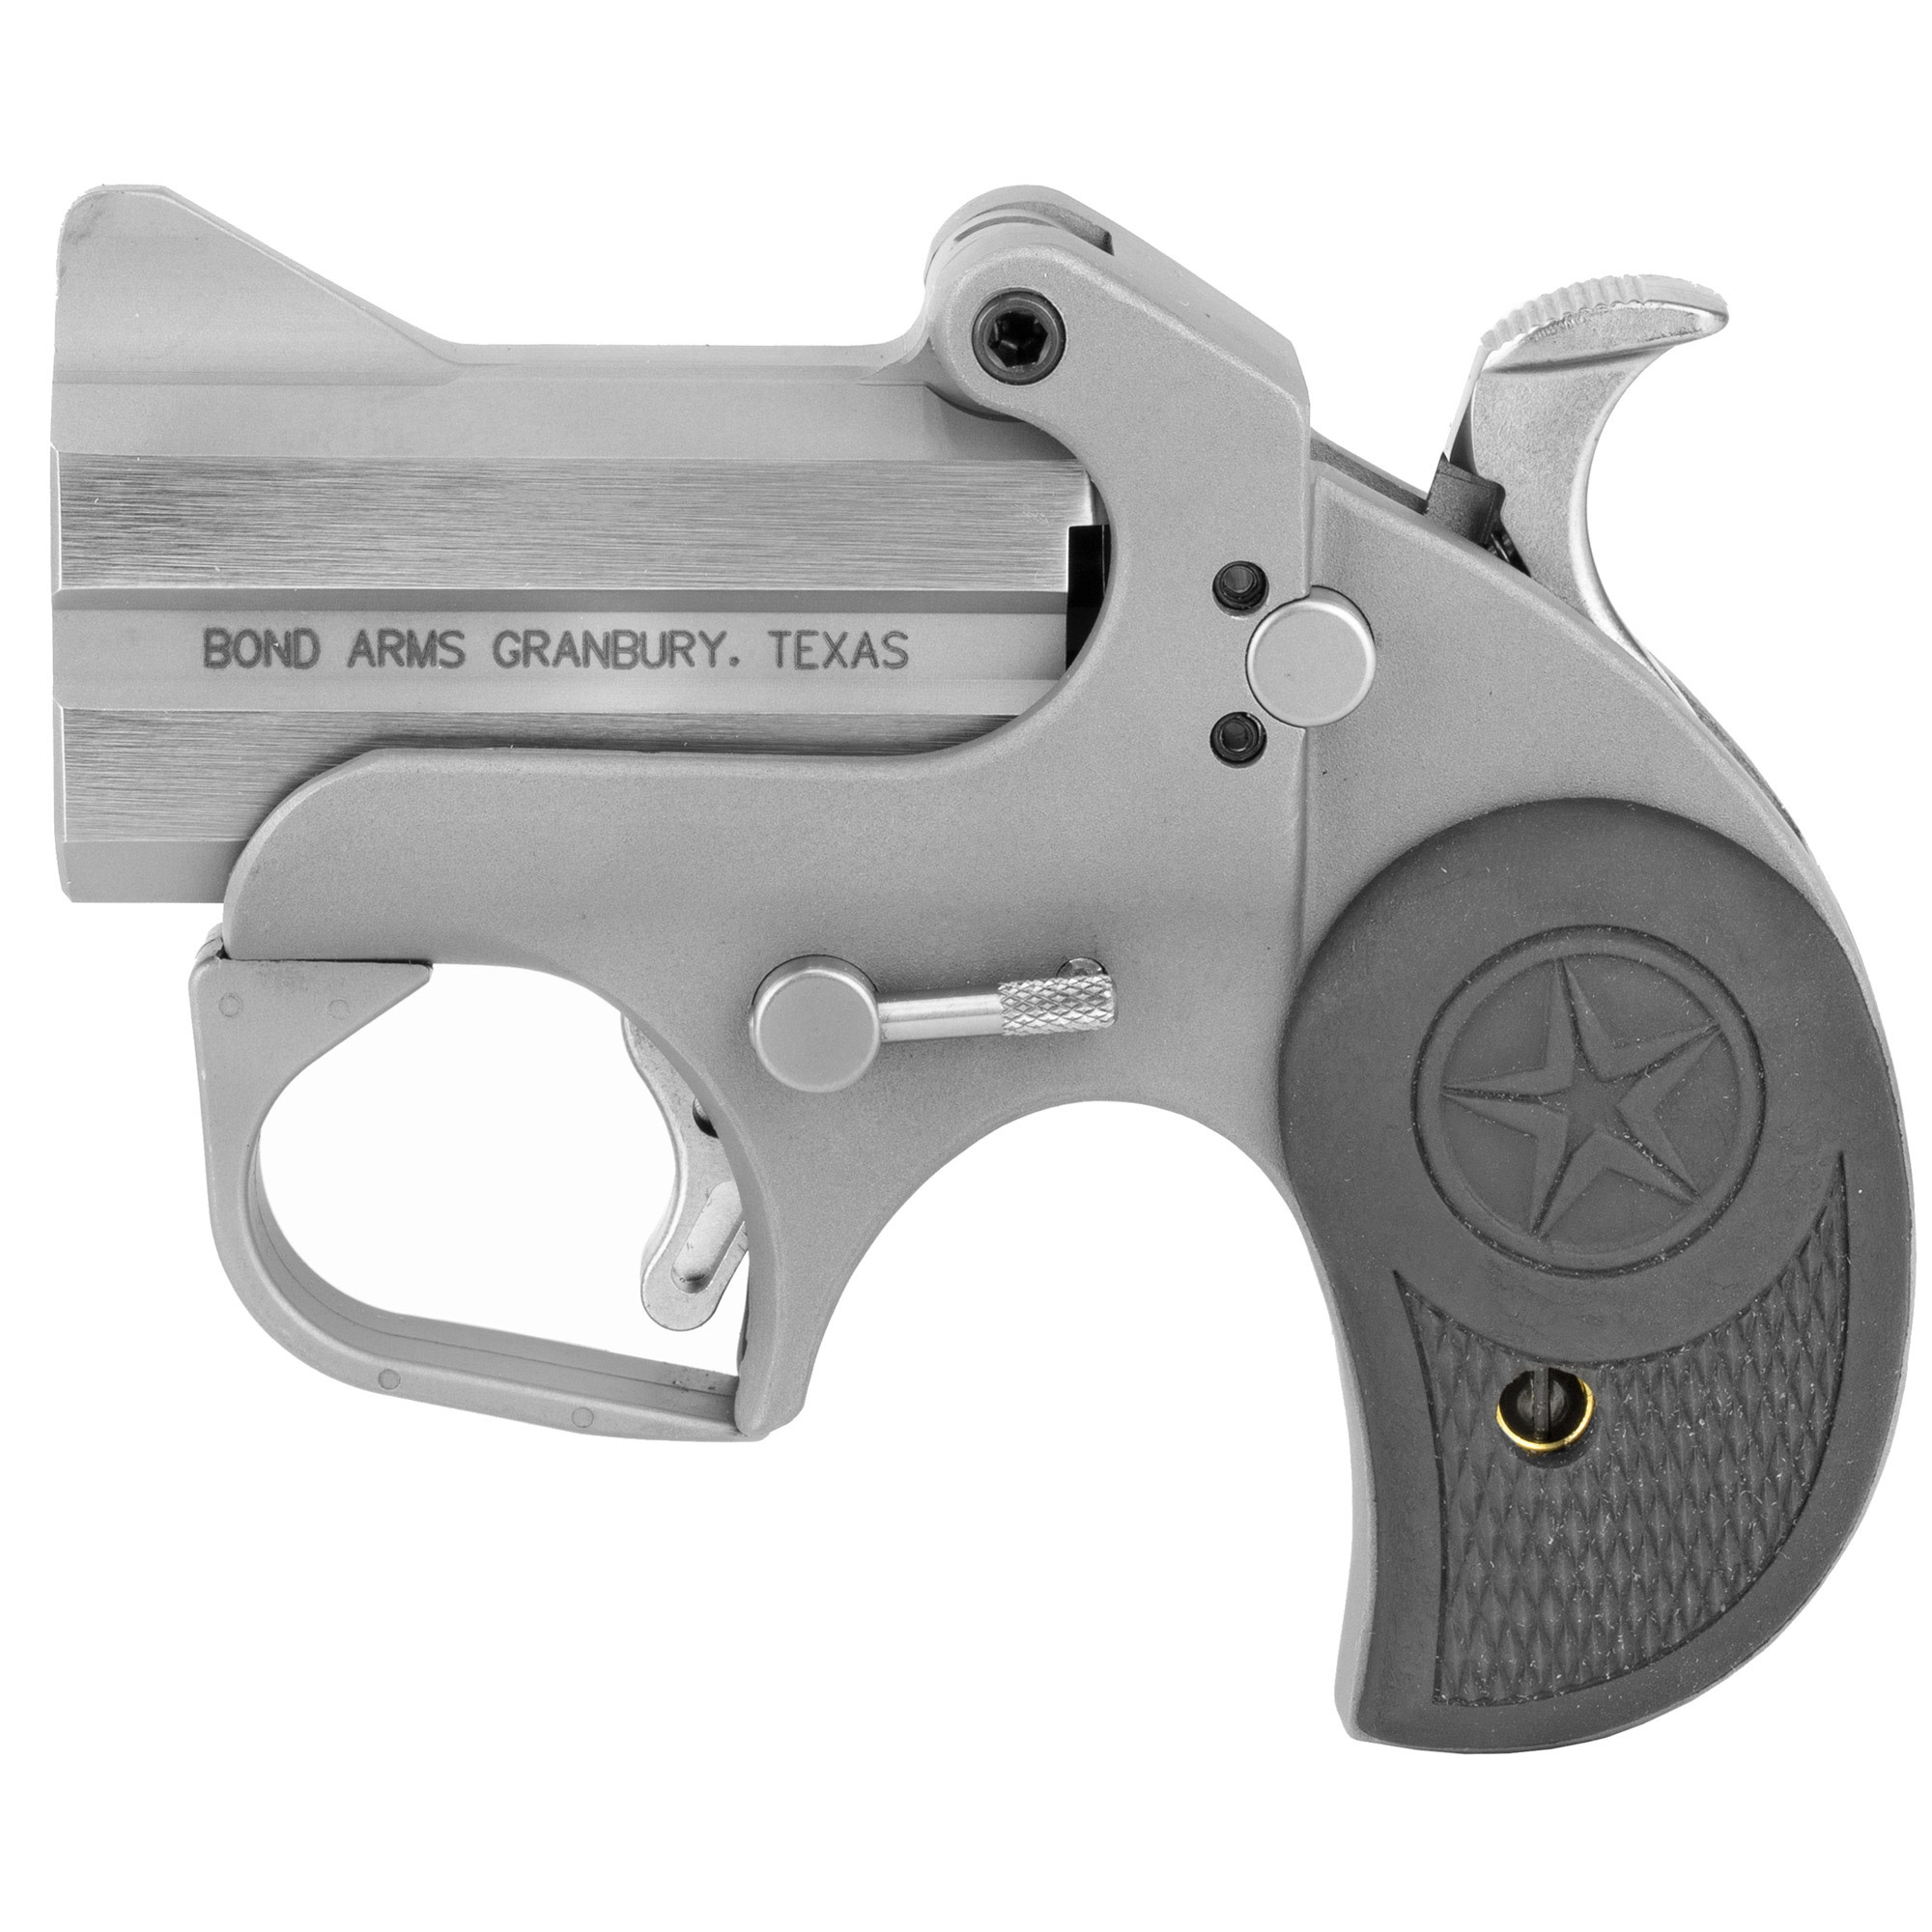 """Bond Arms Roughneck Derringer, 45ACP, 2.5"""", Stainless Steel, Rubber Grips"""